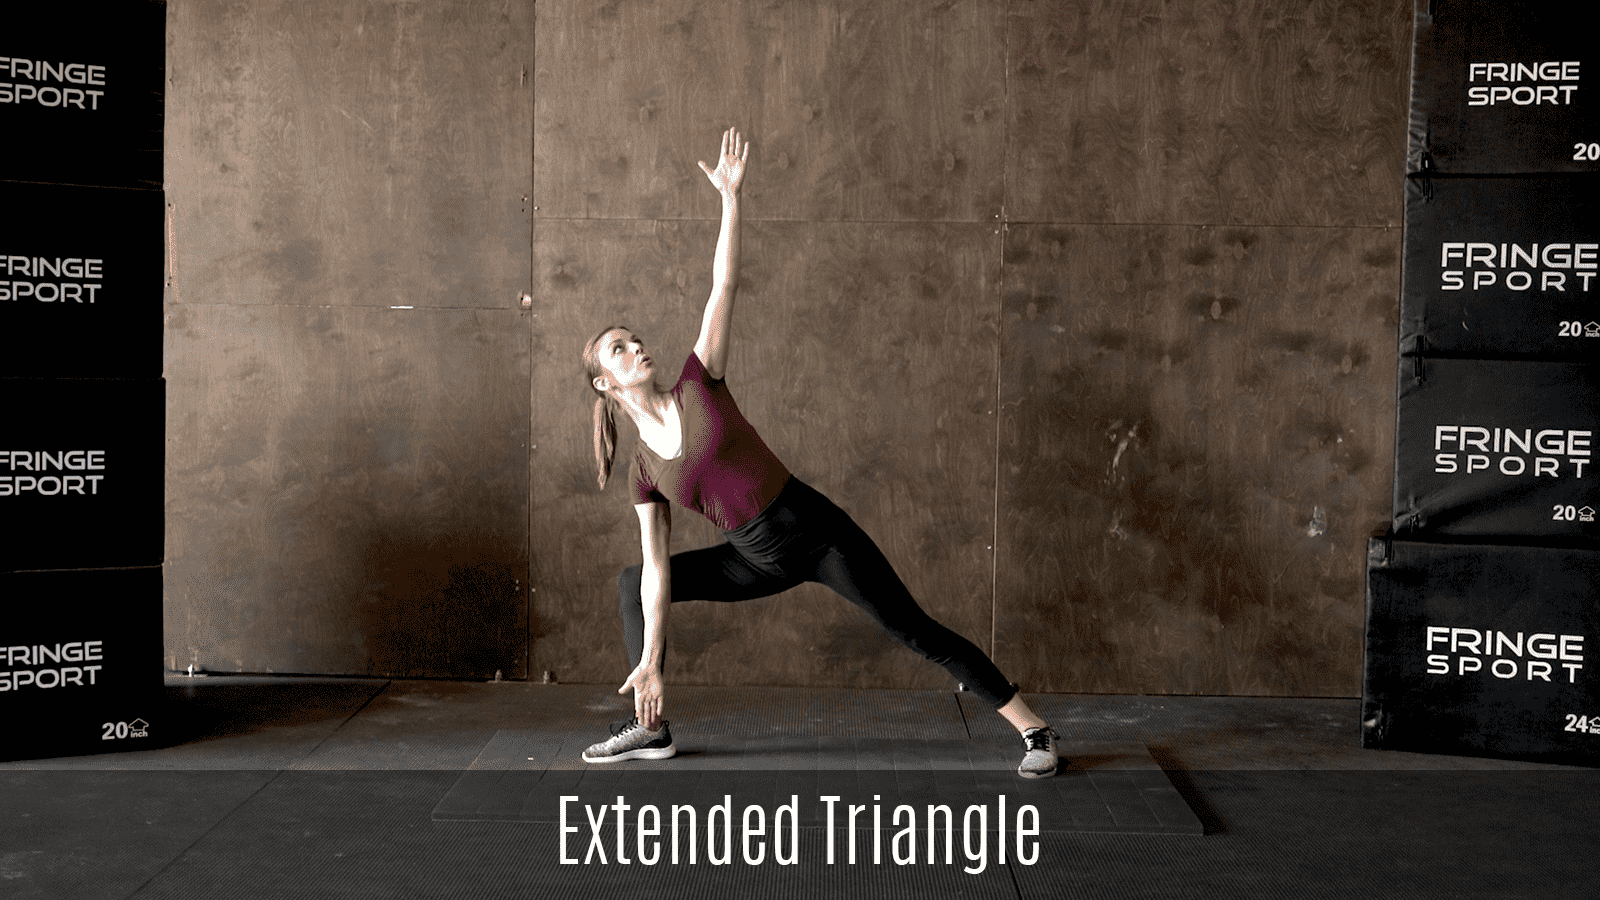 extended triangle exercise demo